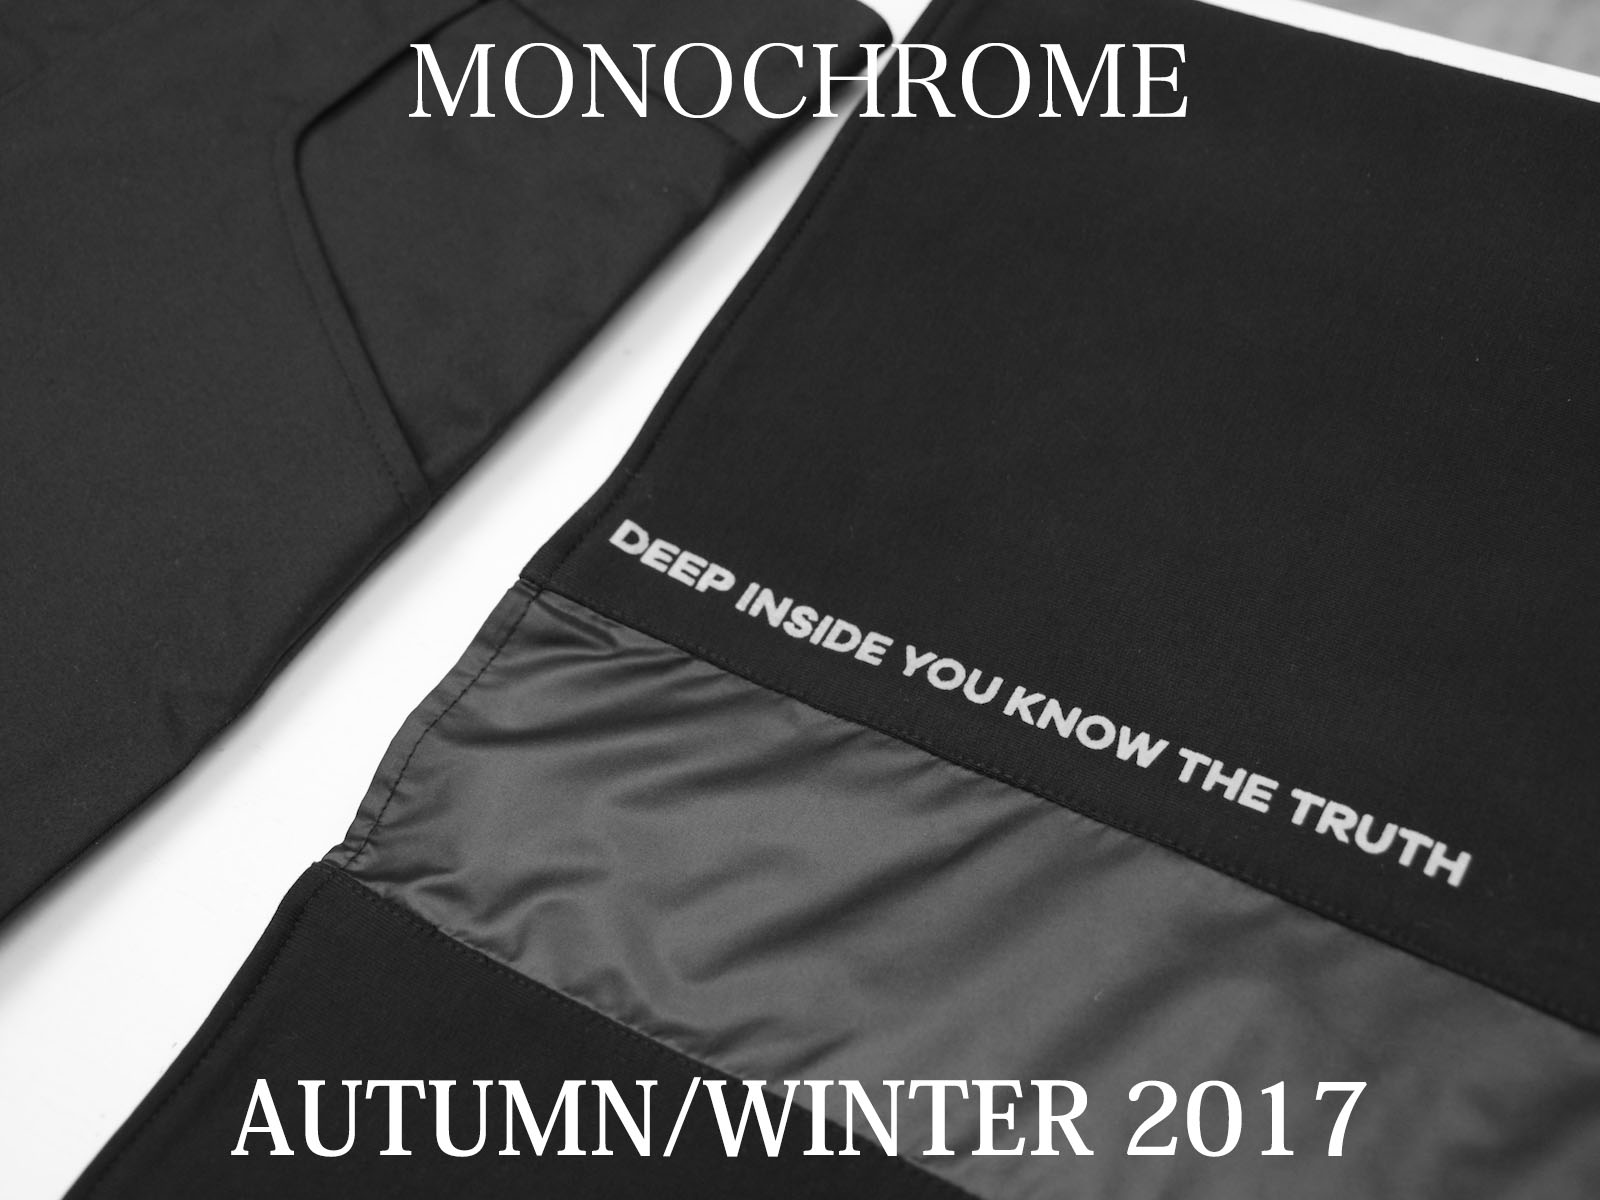 NEW ARRIVAL – MONOCHROME AUTUMN/WINTER 2017